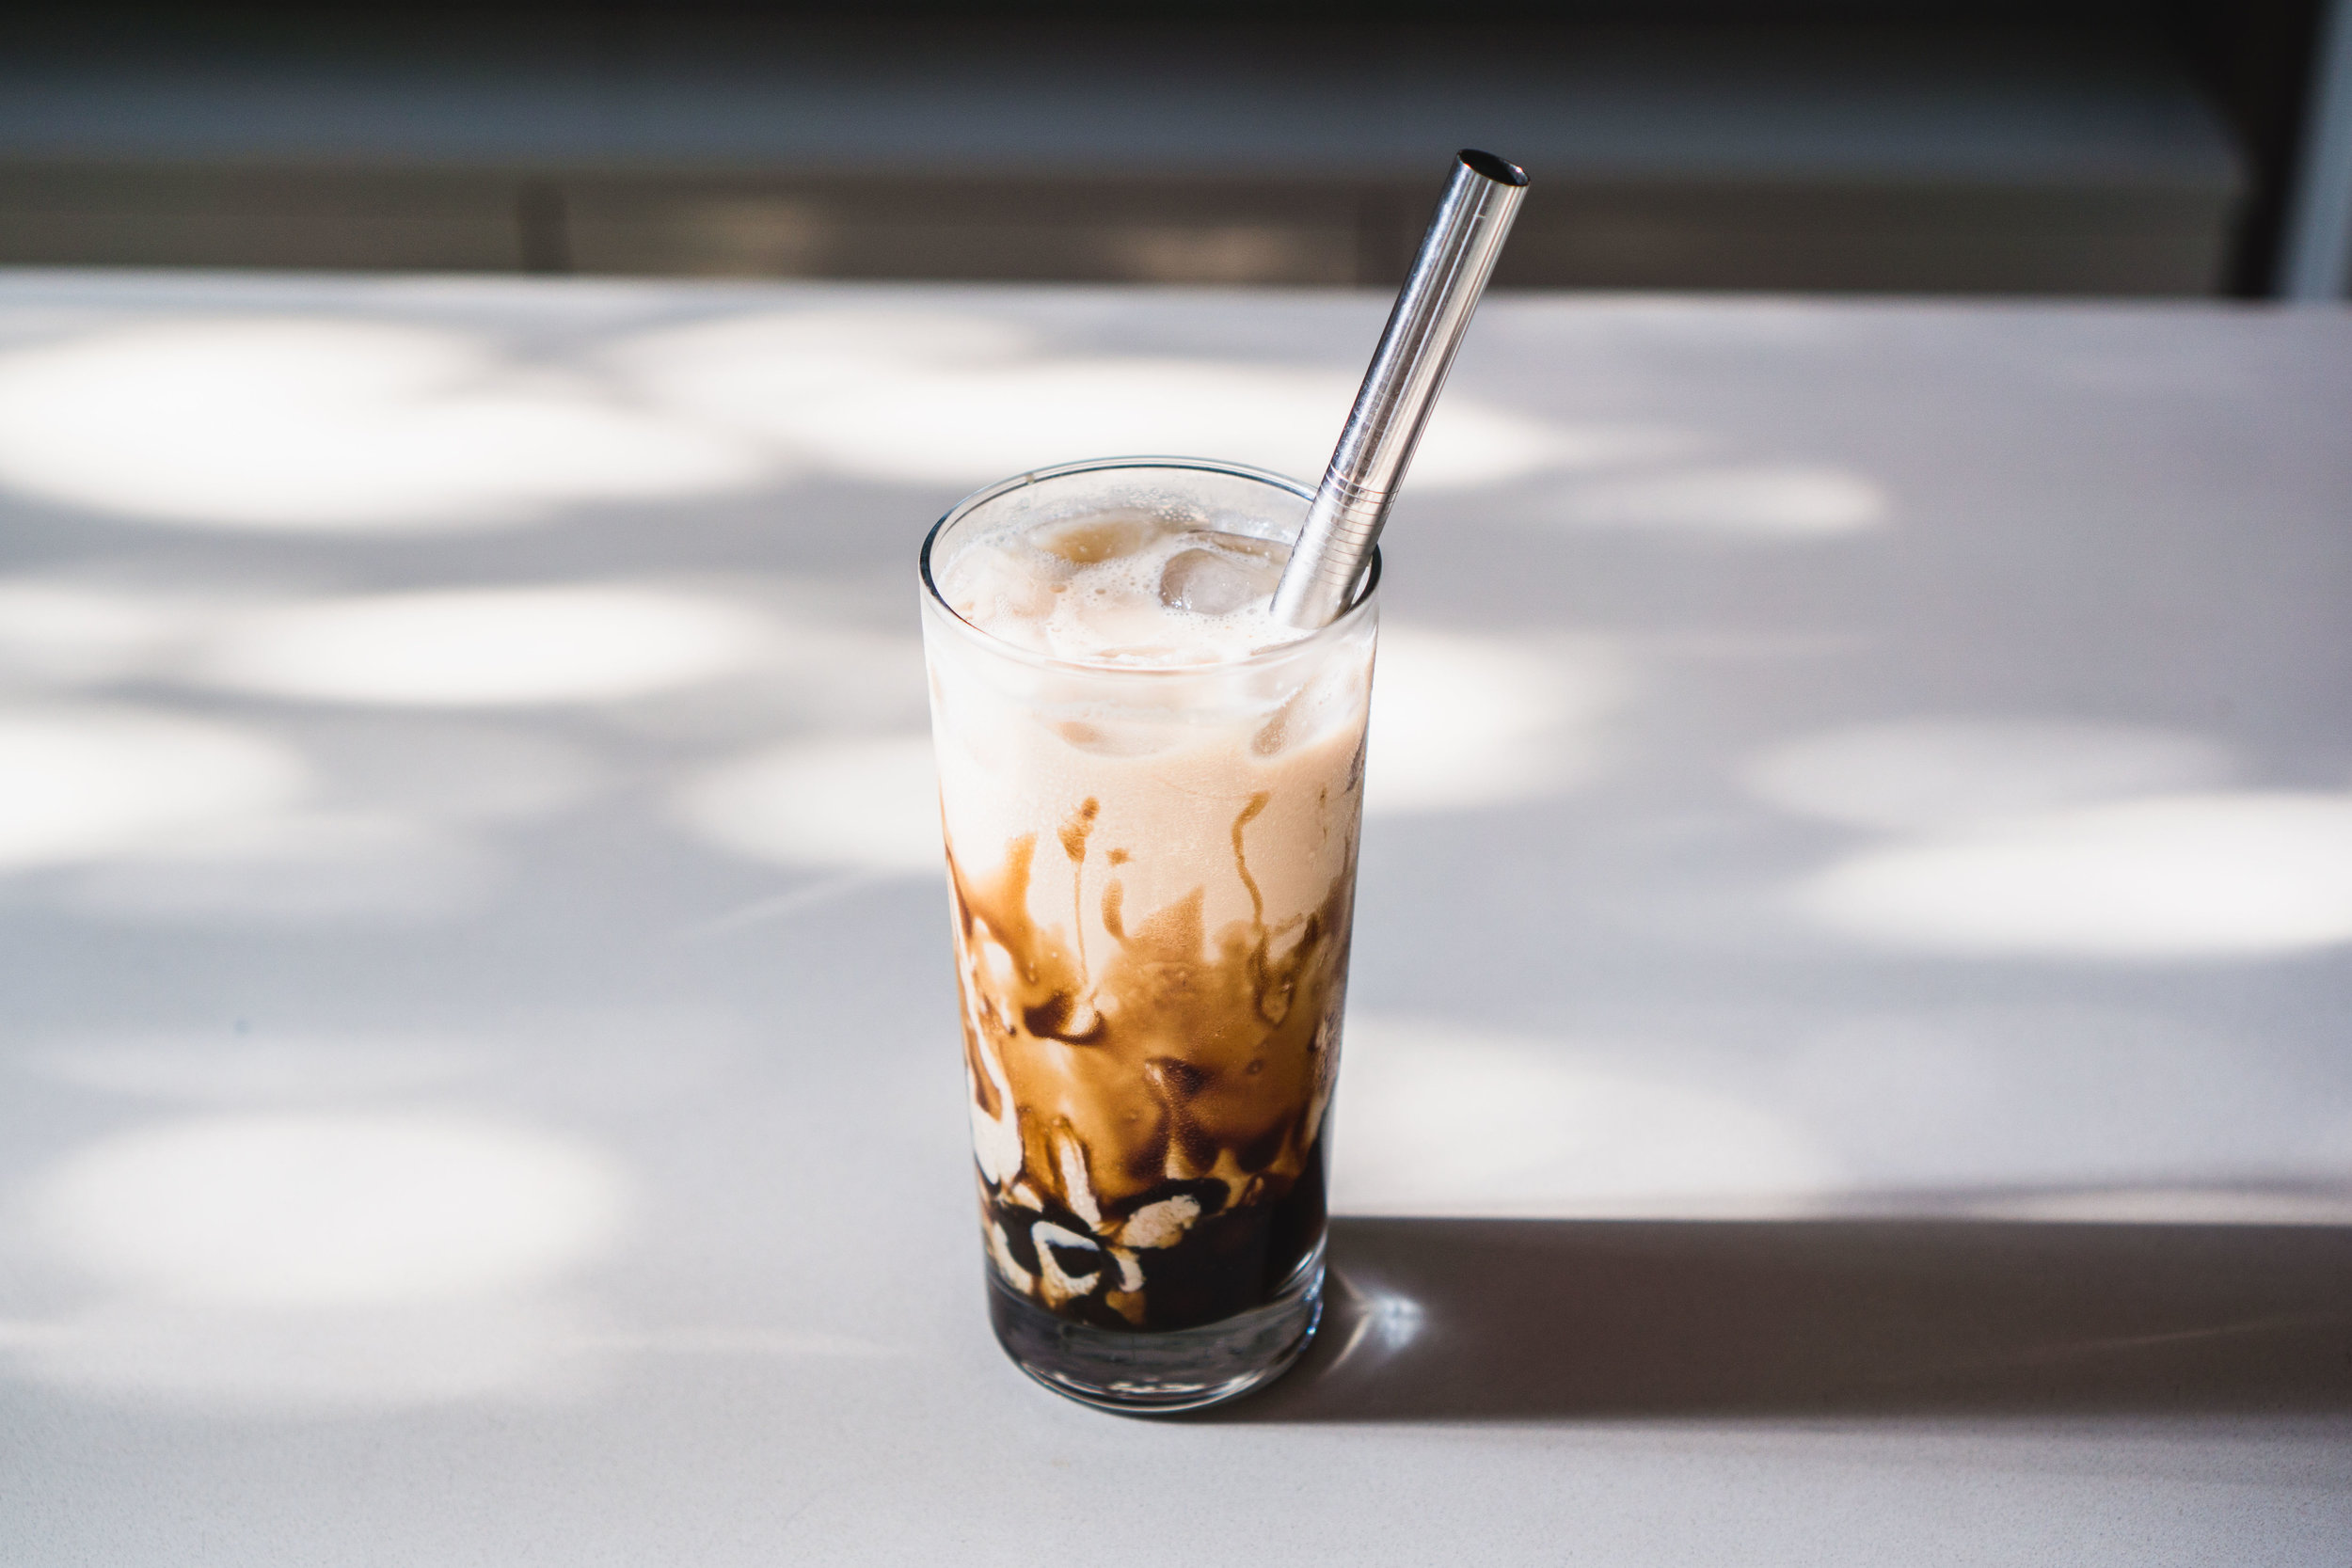 Brown Sugar Bubble Tea 珍珠奶茶 Jun Tonic